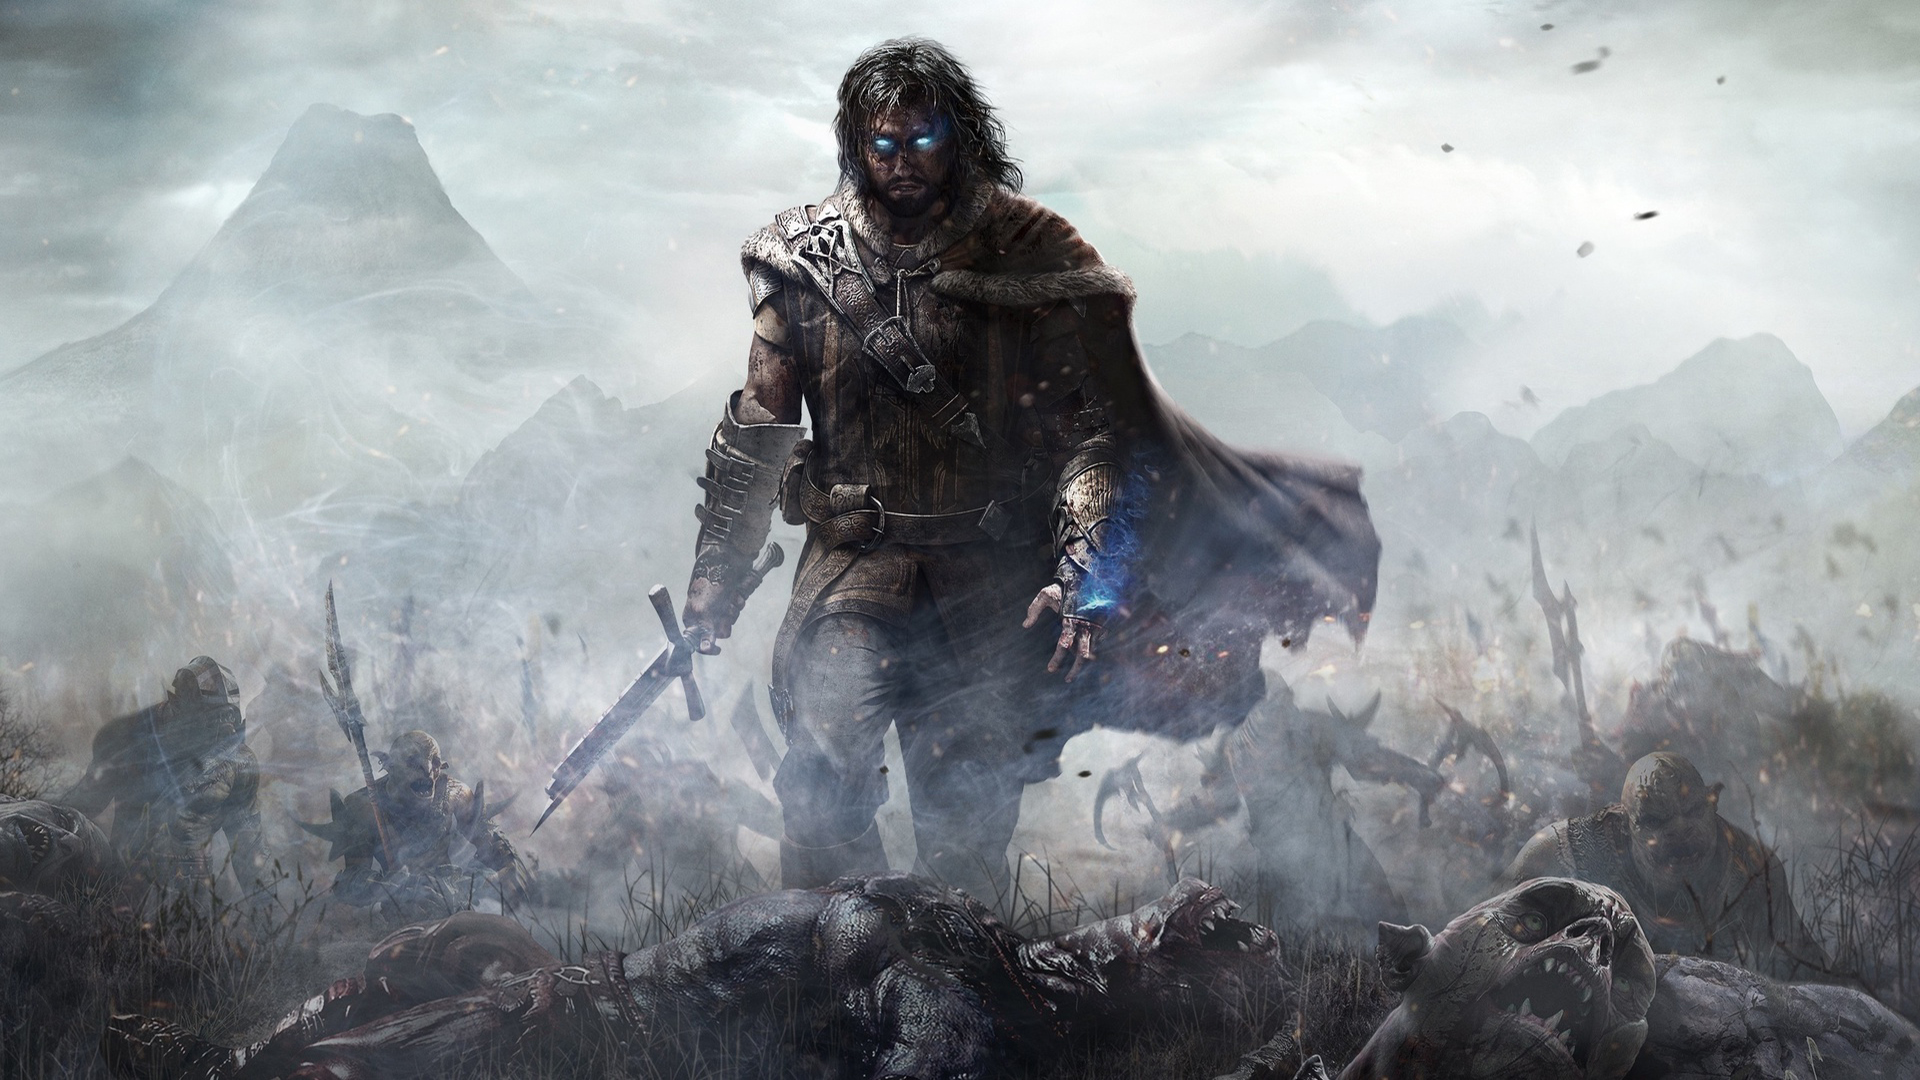 Stunt actress' resume leaks Shadow of Mordor 2, we approve